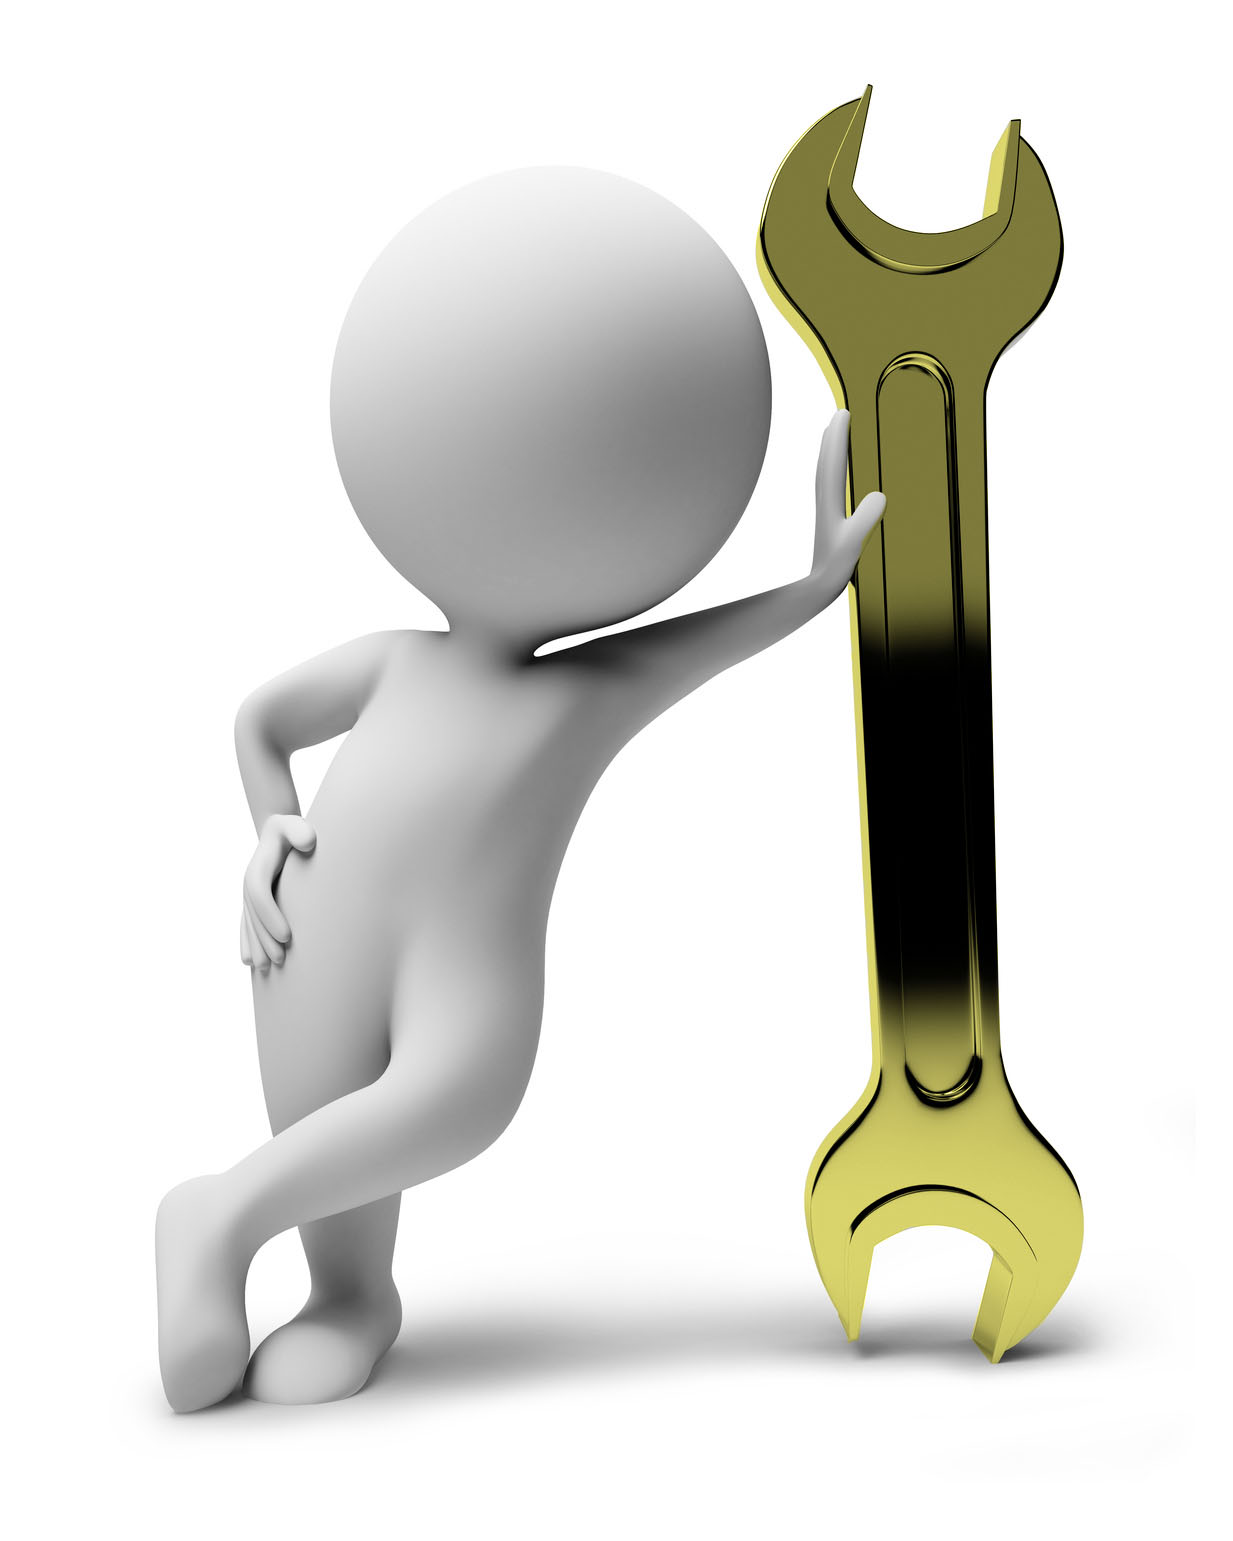 3d small people with a wrench. 3d image. Isolated white background.